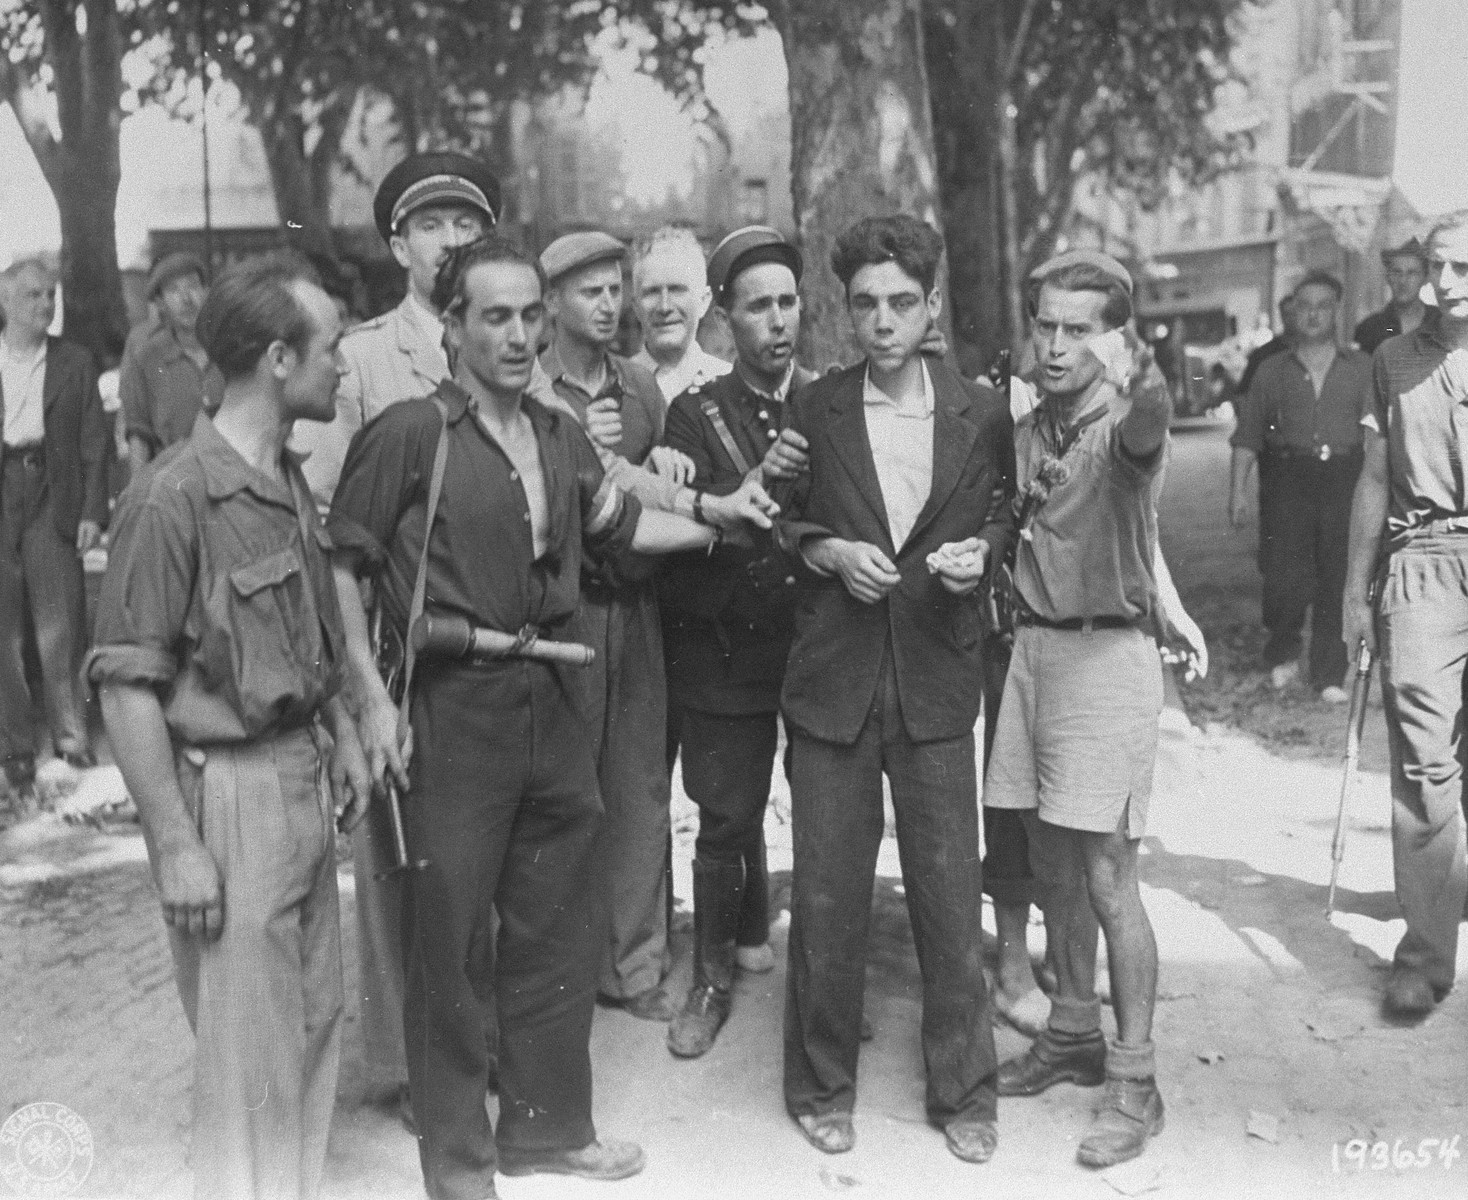 Members of the French resistance in Aix-en-Provence parade a beaten collaborator through the streets of the city.